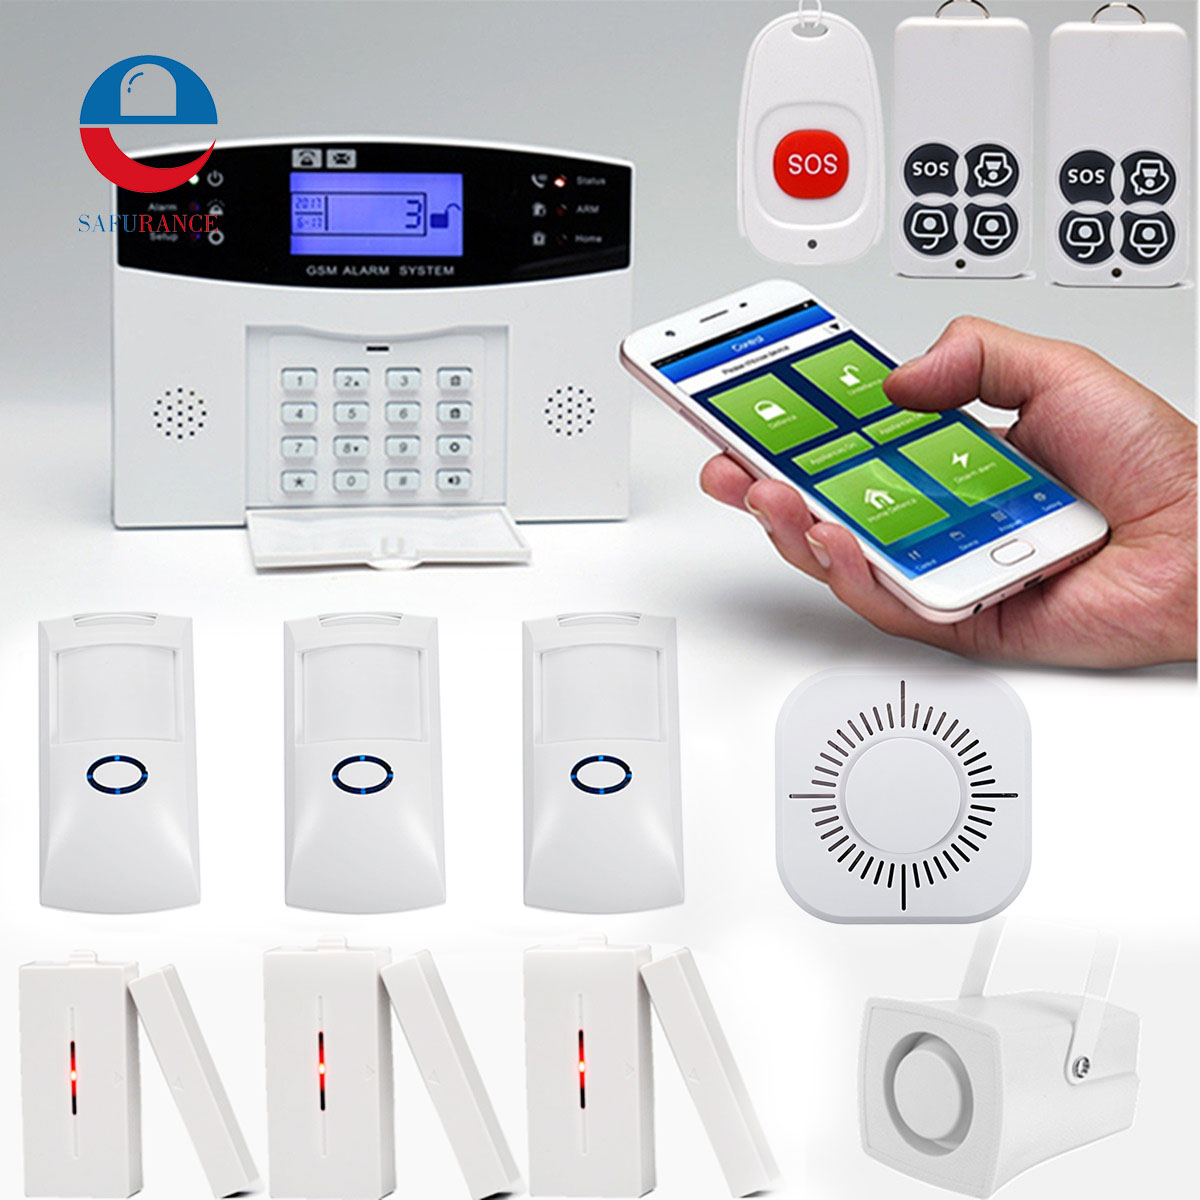 Wireless GSM Alarm System Intelligent APP Control LCD GSM SMS Burglar Alarm System Kit Auto Dialer Home Security Protection Safe цена 2017